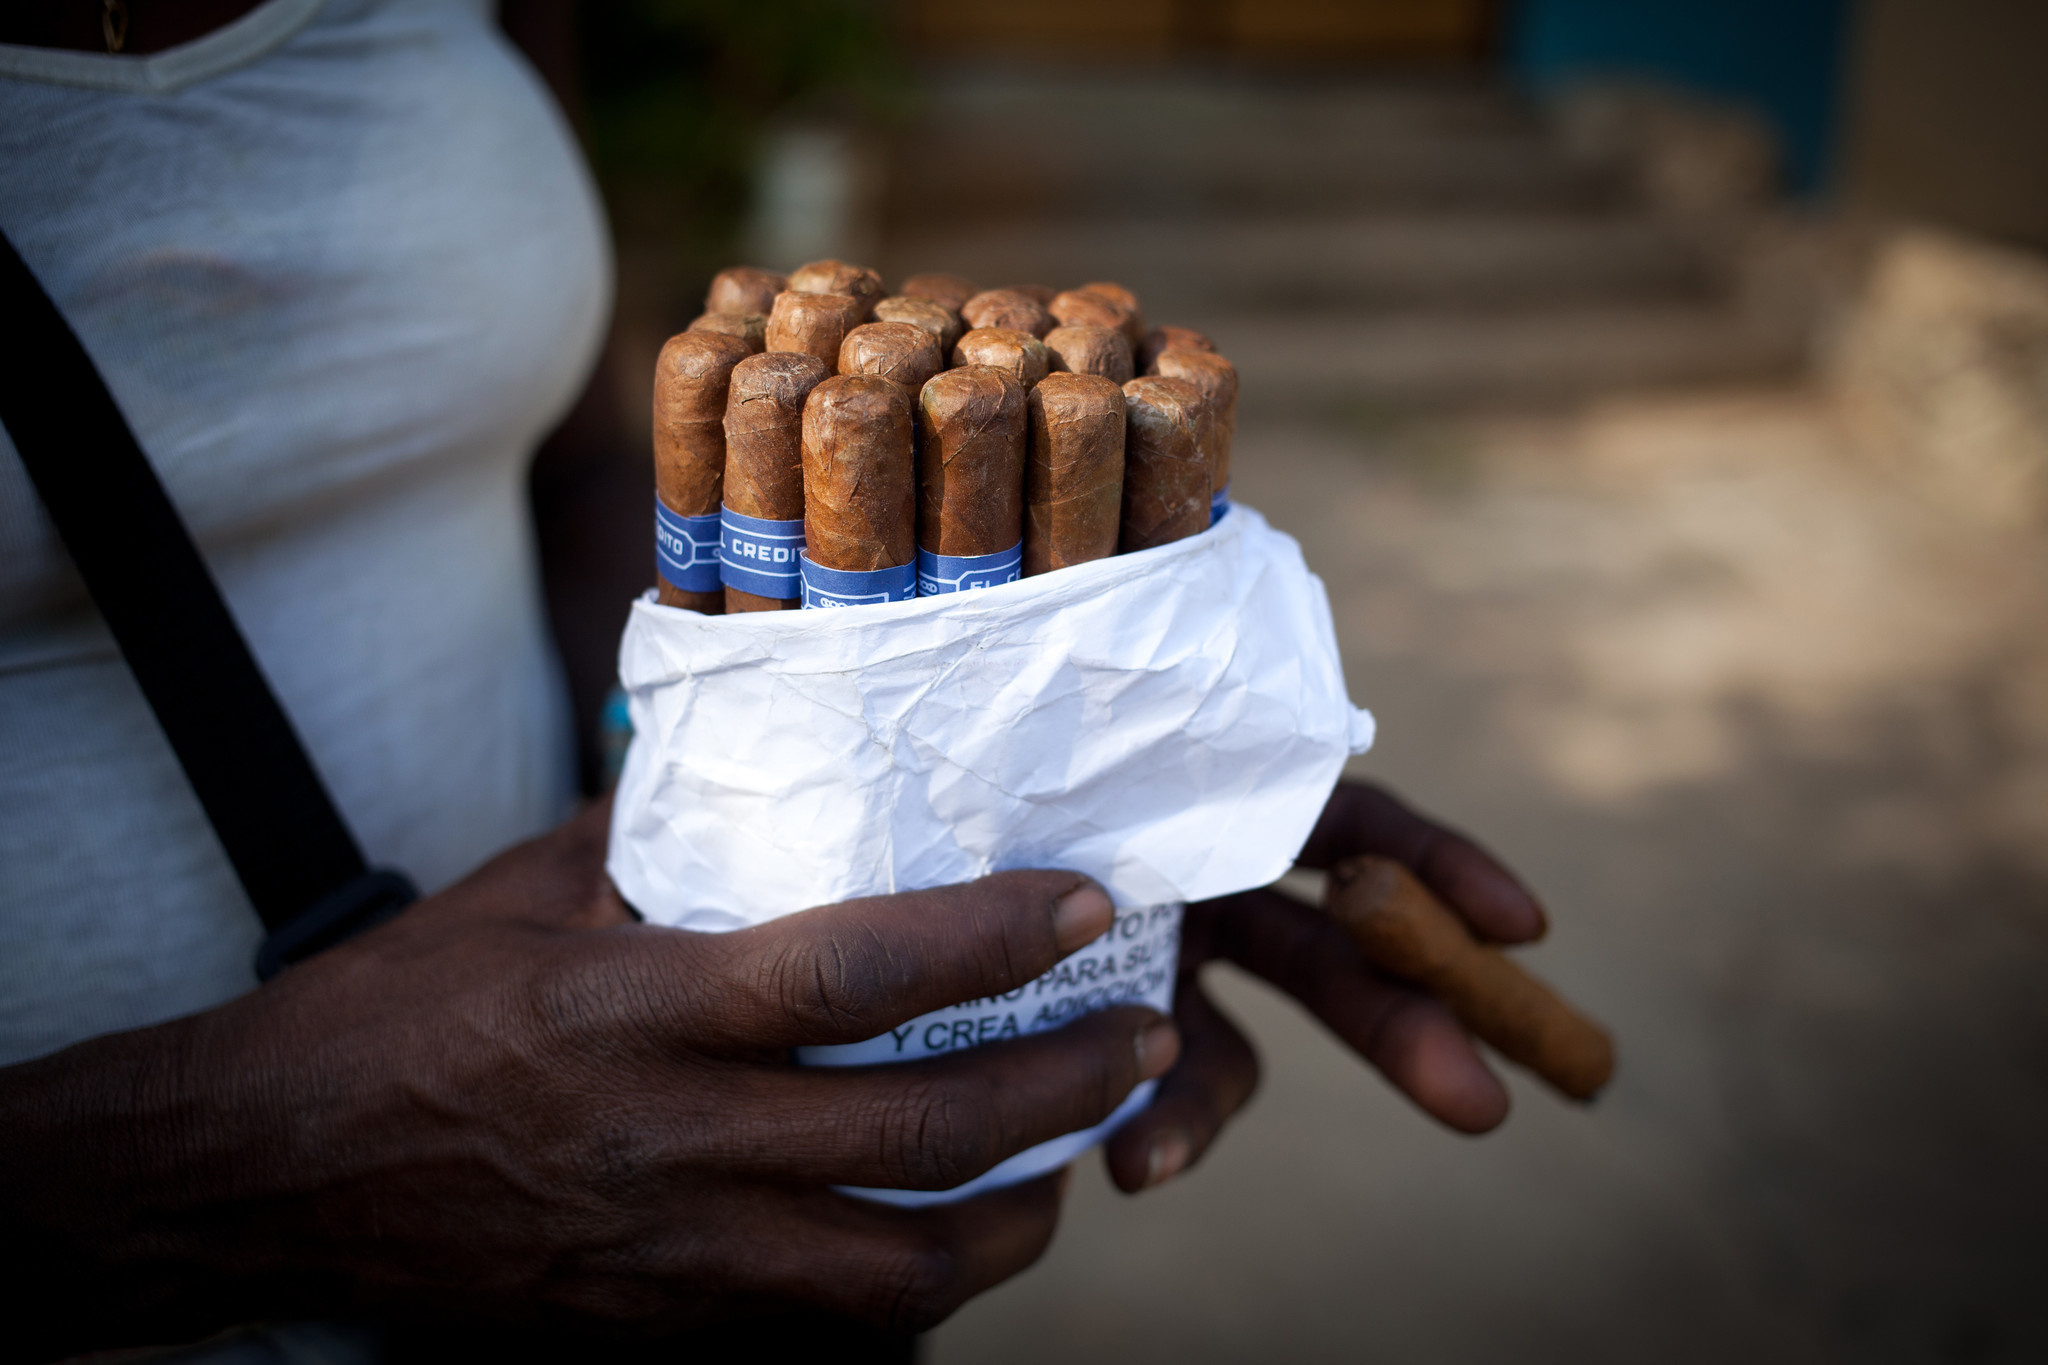 the history of cuba trade embargo Obama should end the embargo on cuba show cuba is positioning itself for a post-embargo era see it as an opportunity to make history.